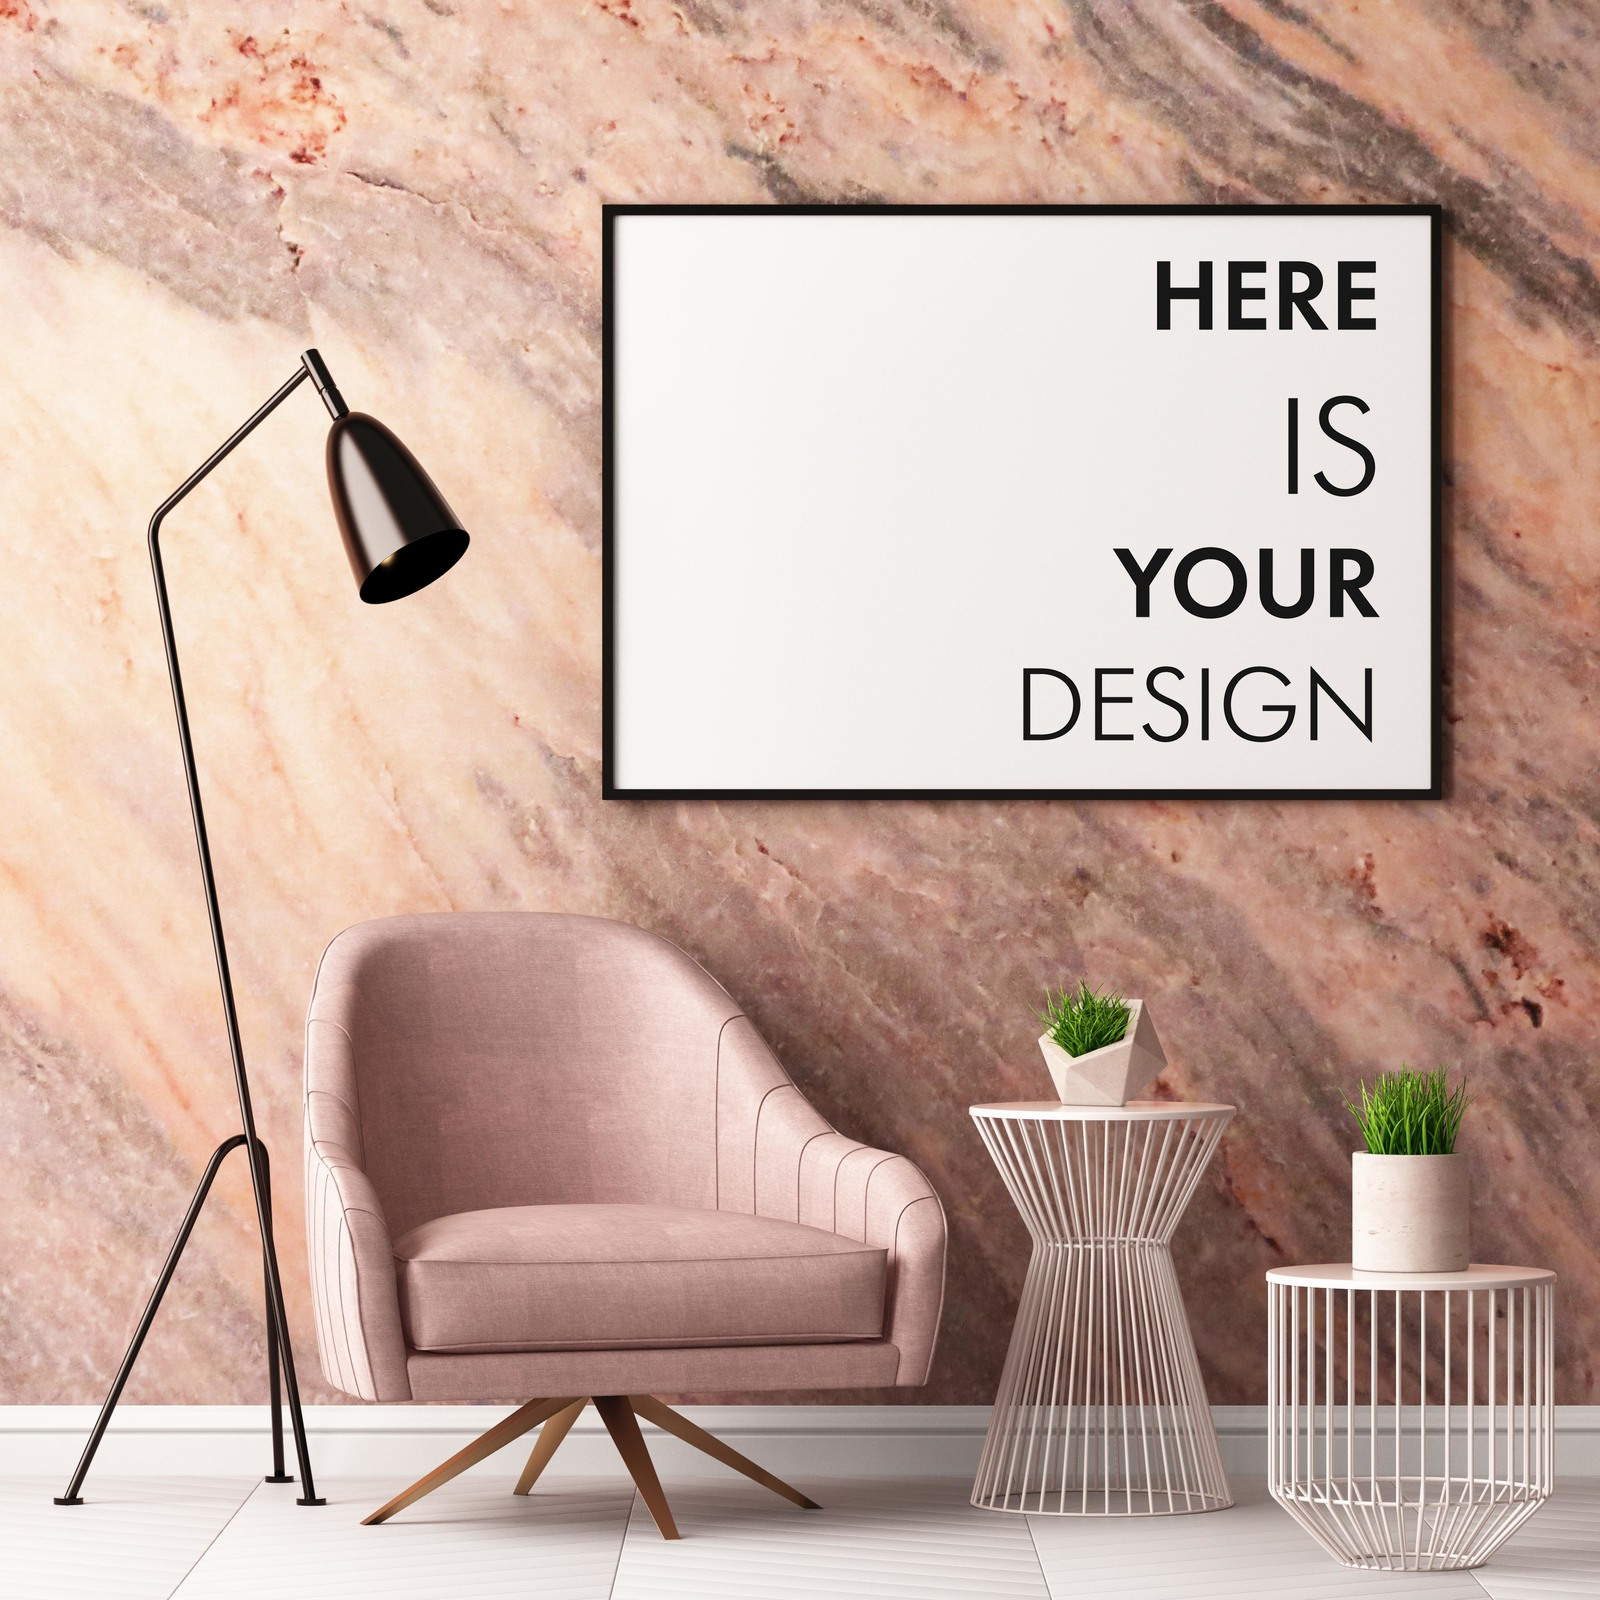 6 mockup posters in the interior